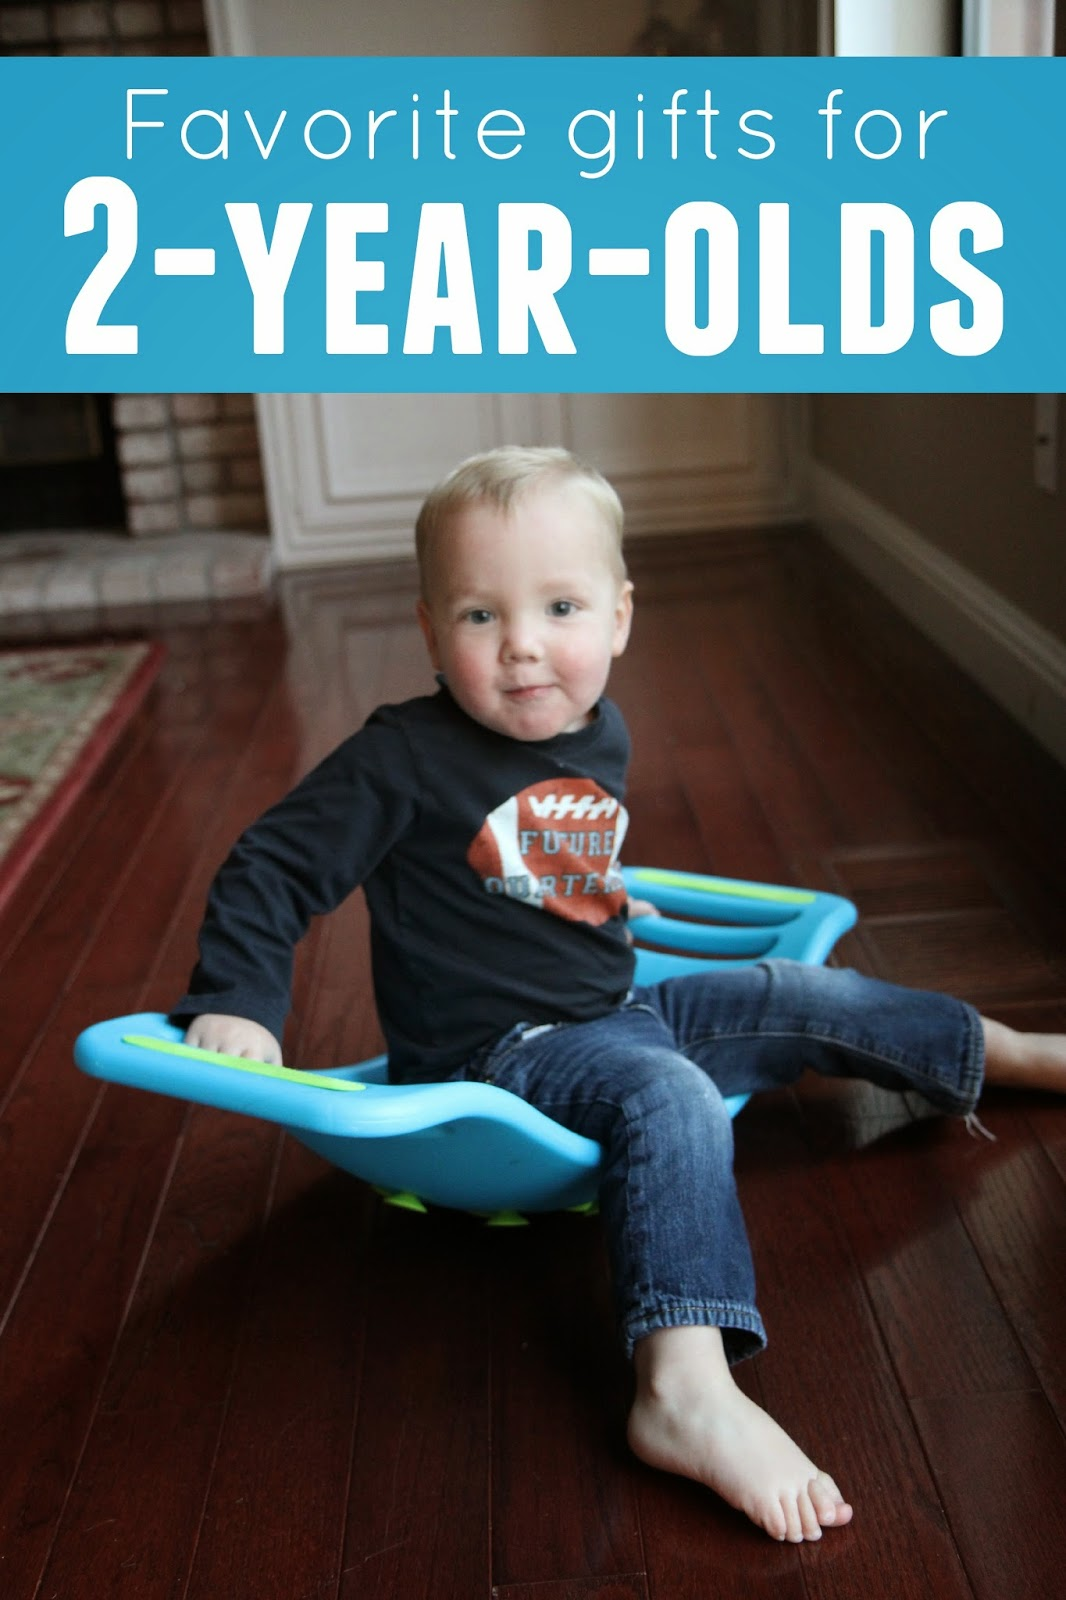 Toddler Approved Favorite Gifts For 2 Year Olds